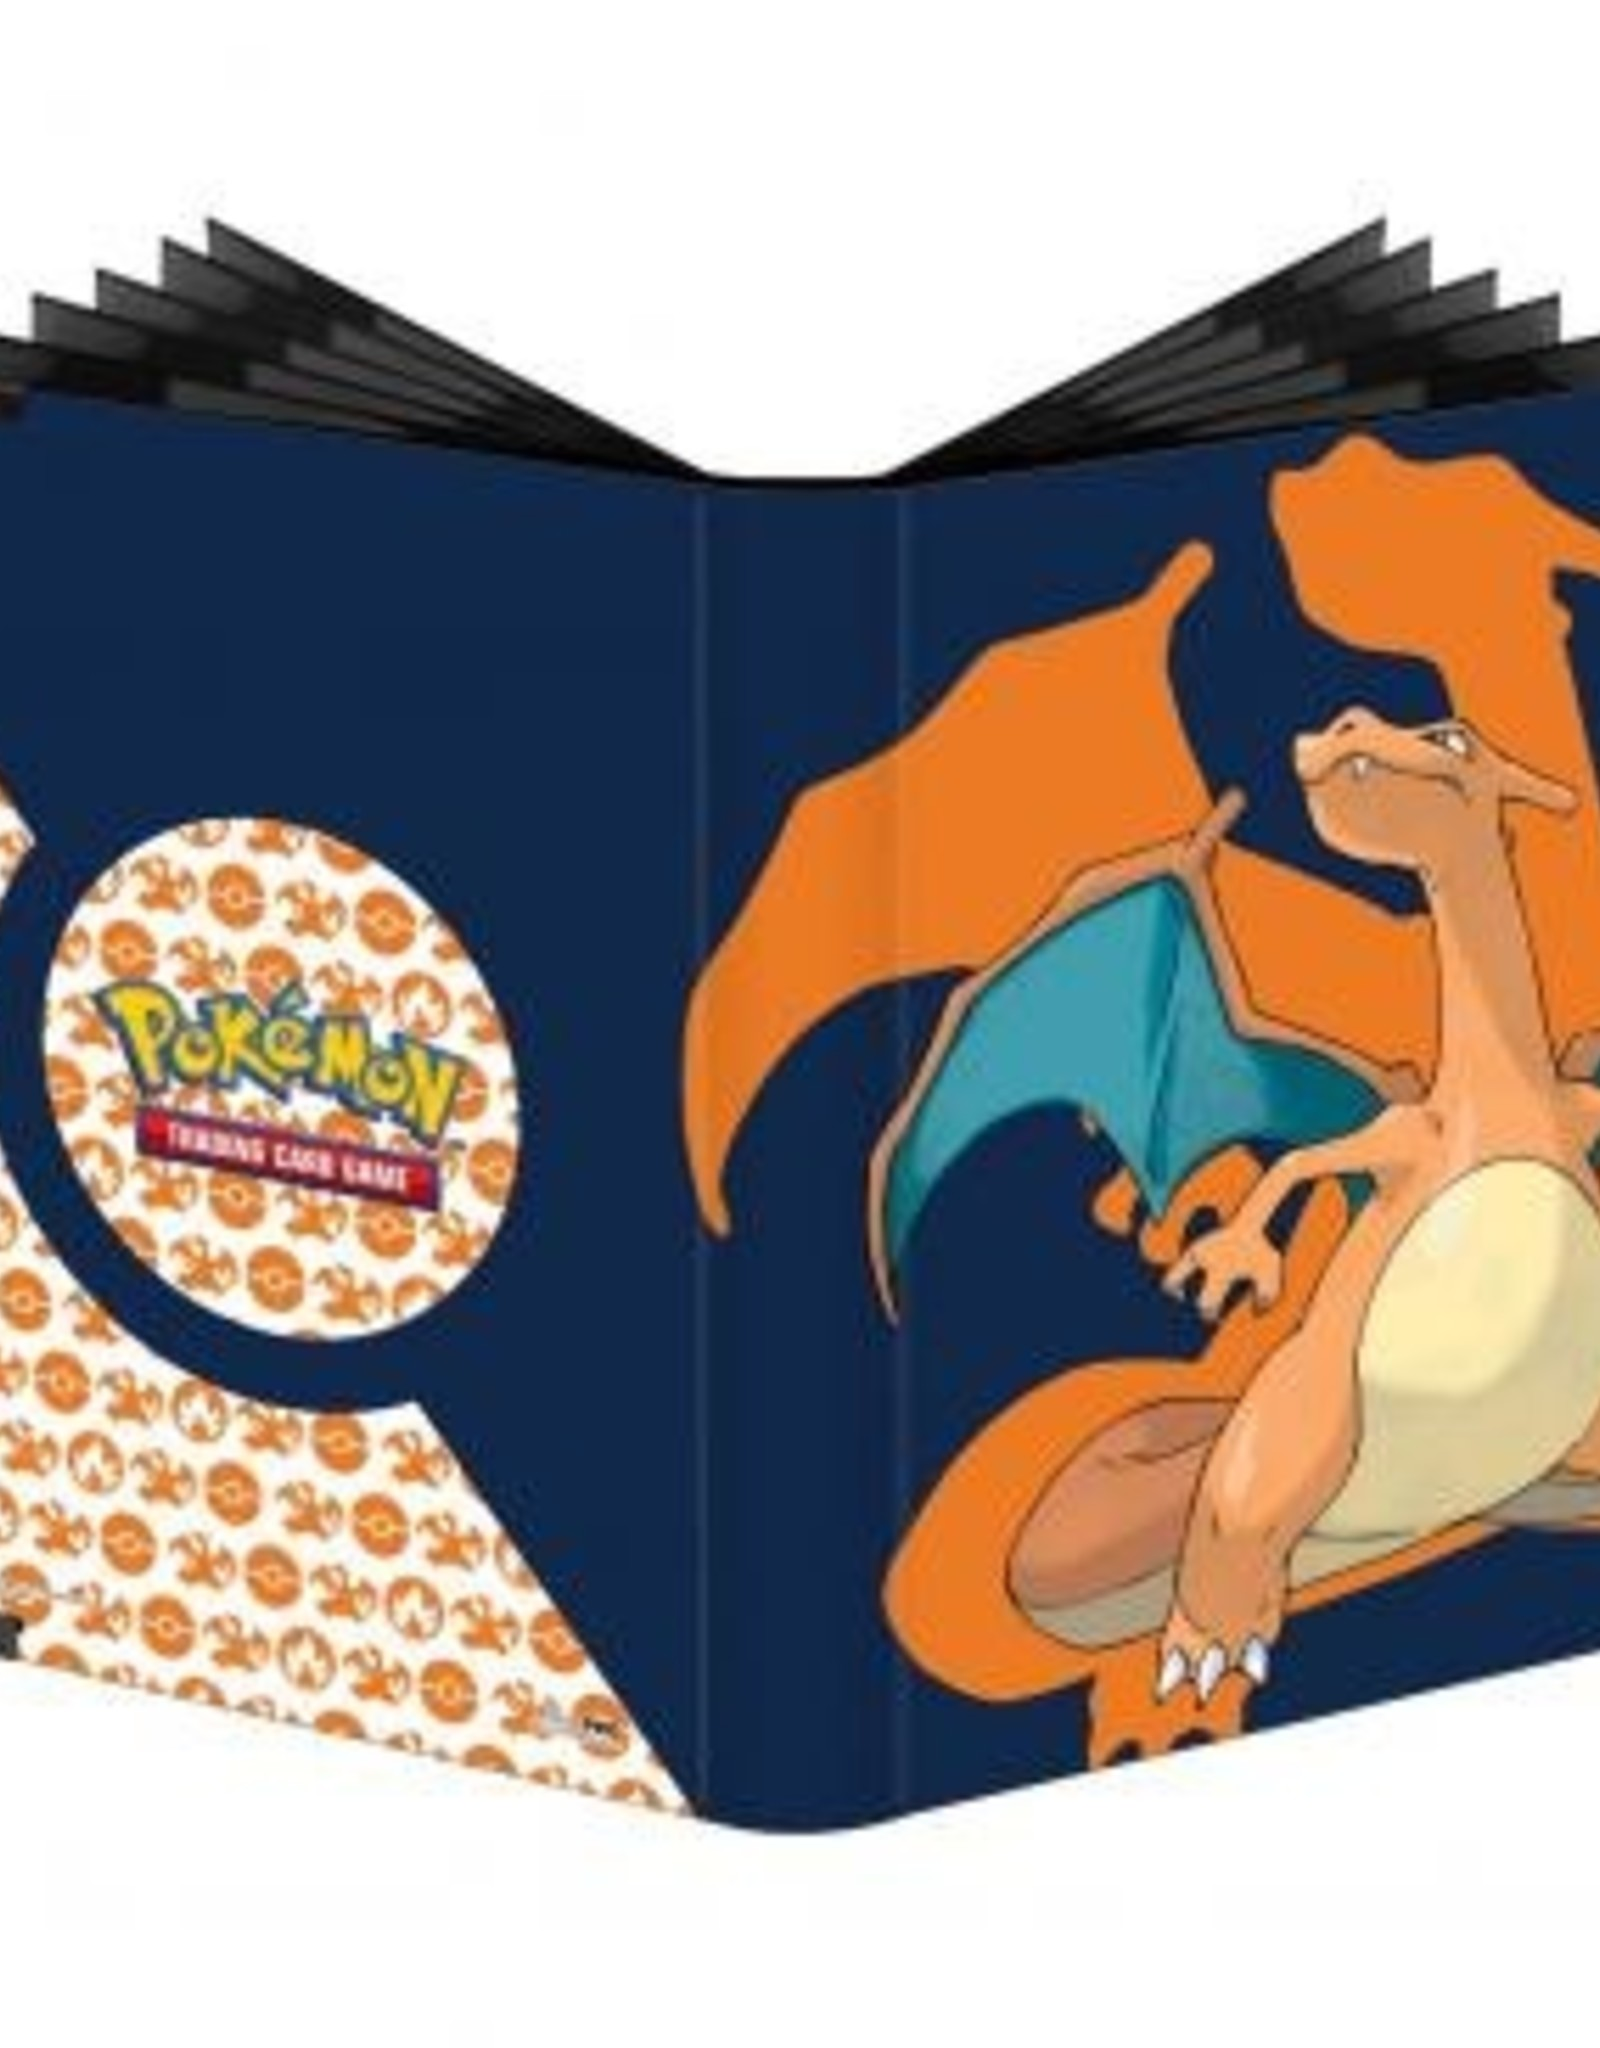 Ultra Pro Pro Binder Pokemon Charizard 2020 9-pocket